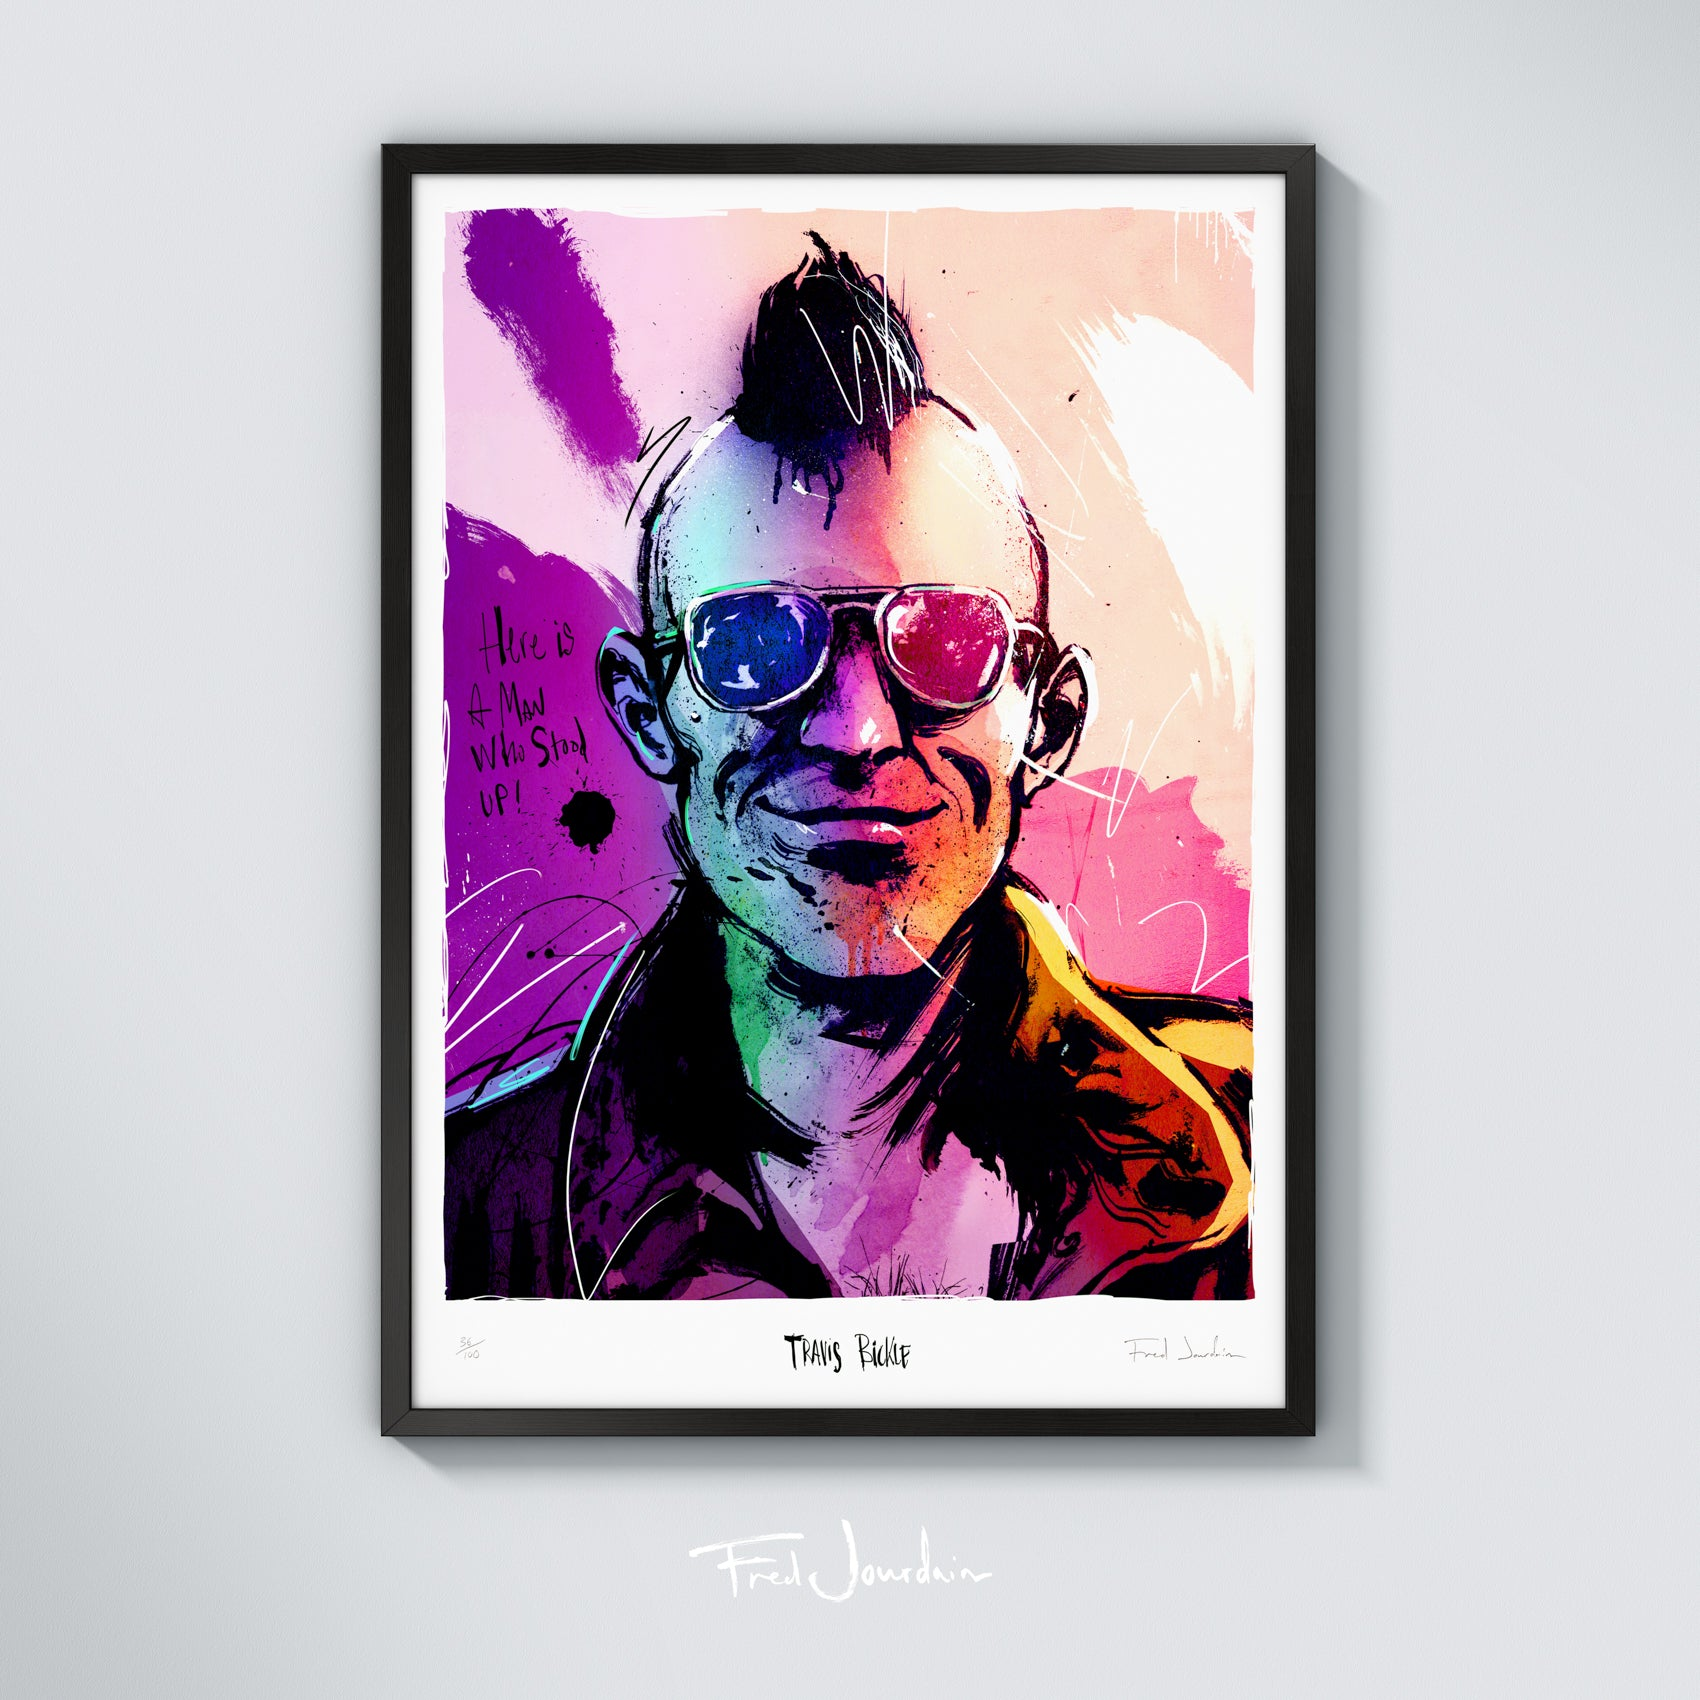 Travis Bickle - Taxi Driver